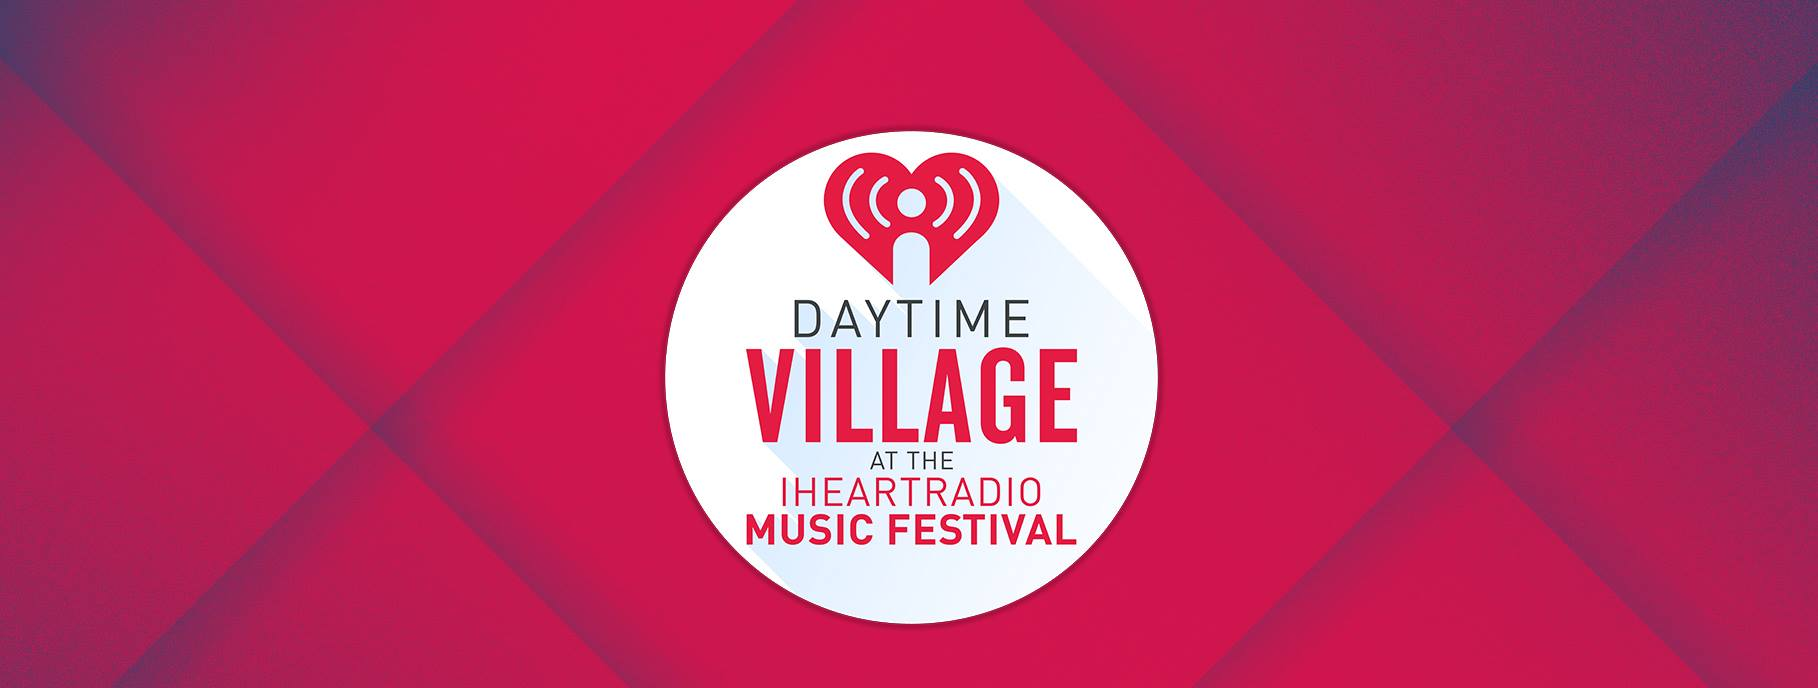 iHeartRadio Music Festival Daytime Village. Photo by: iHeartRadio Music Festival